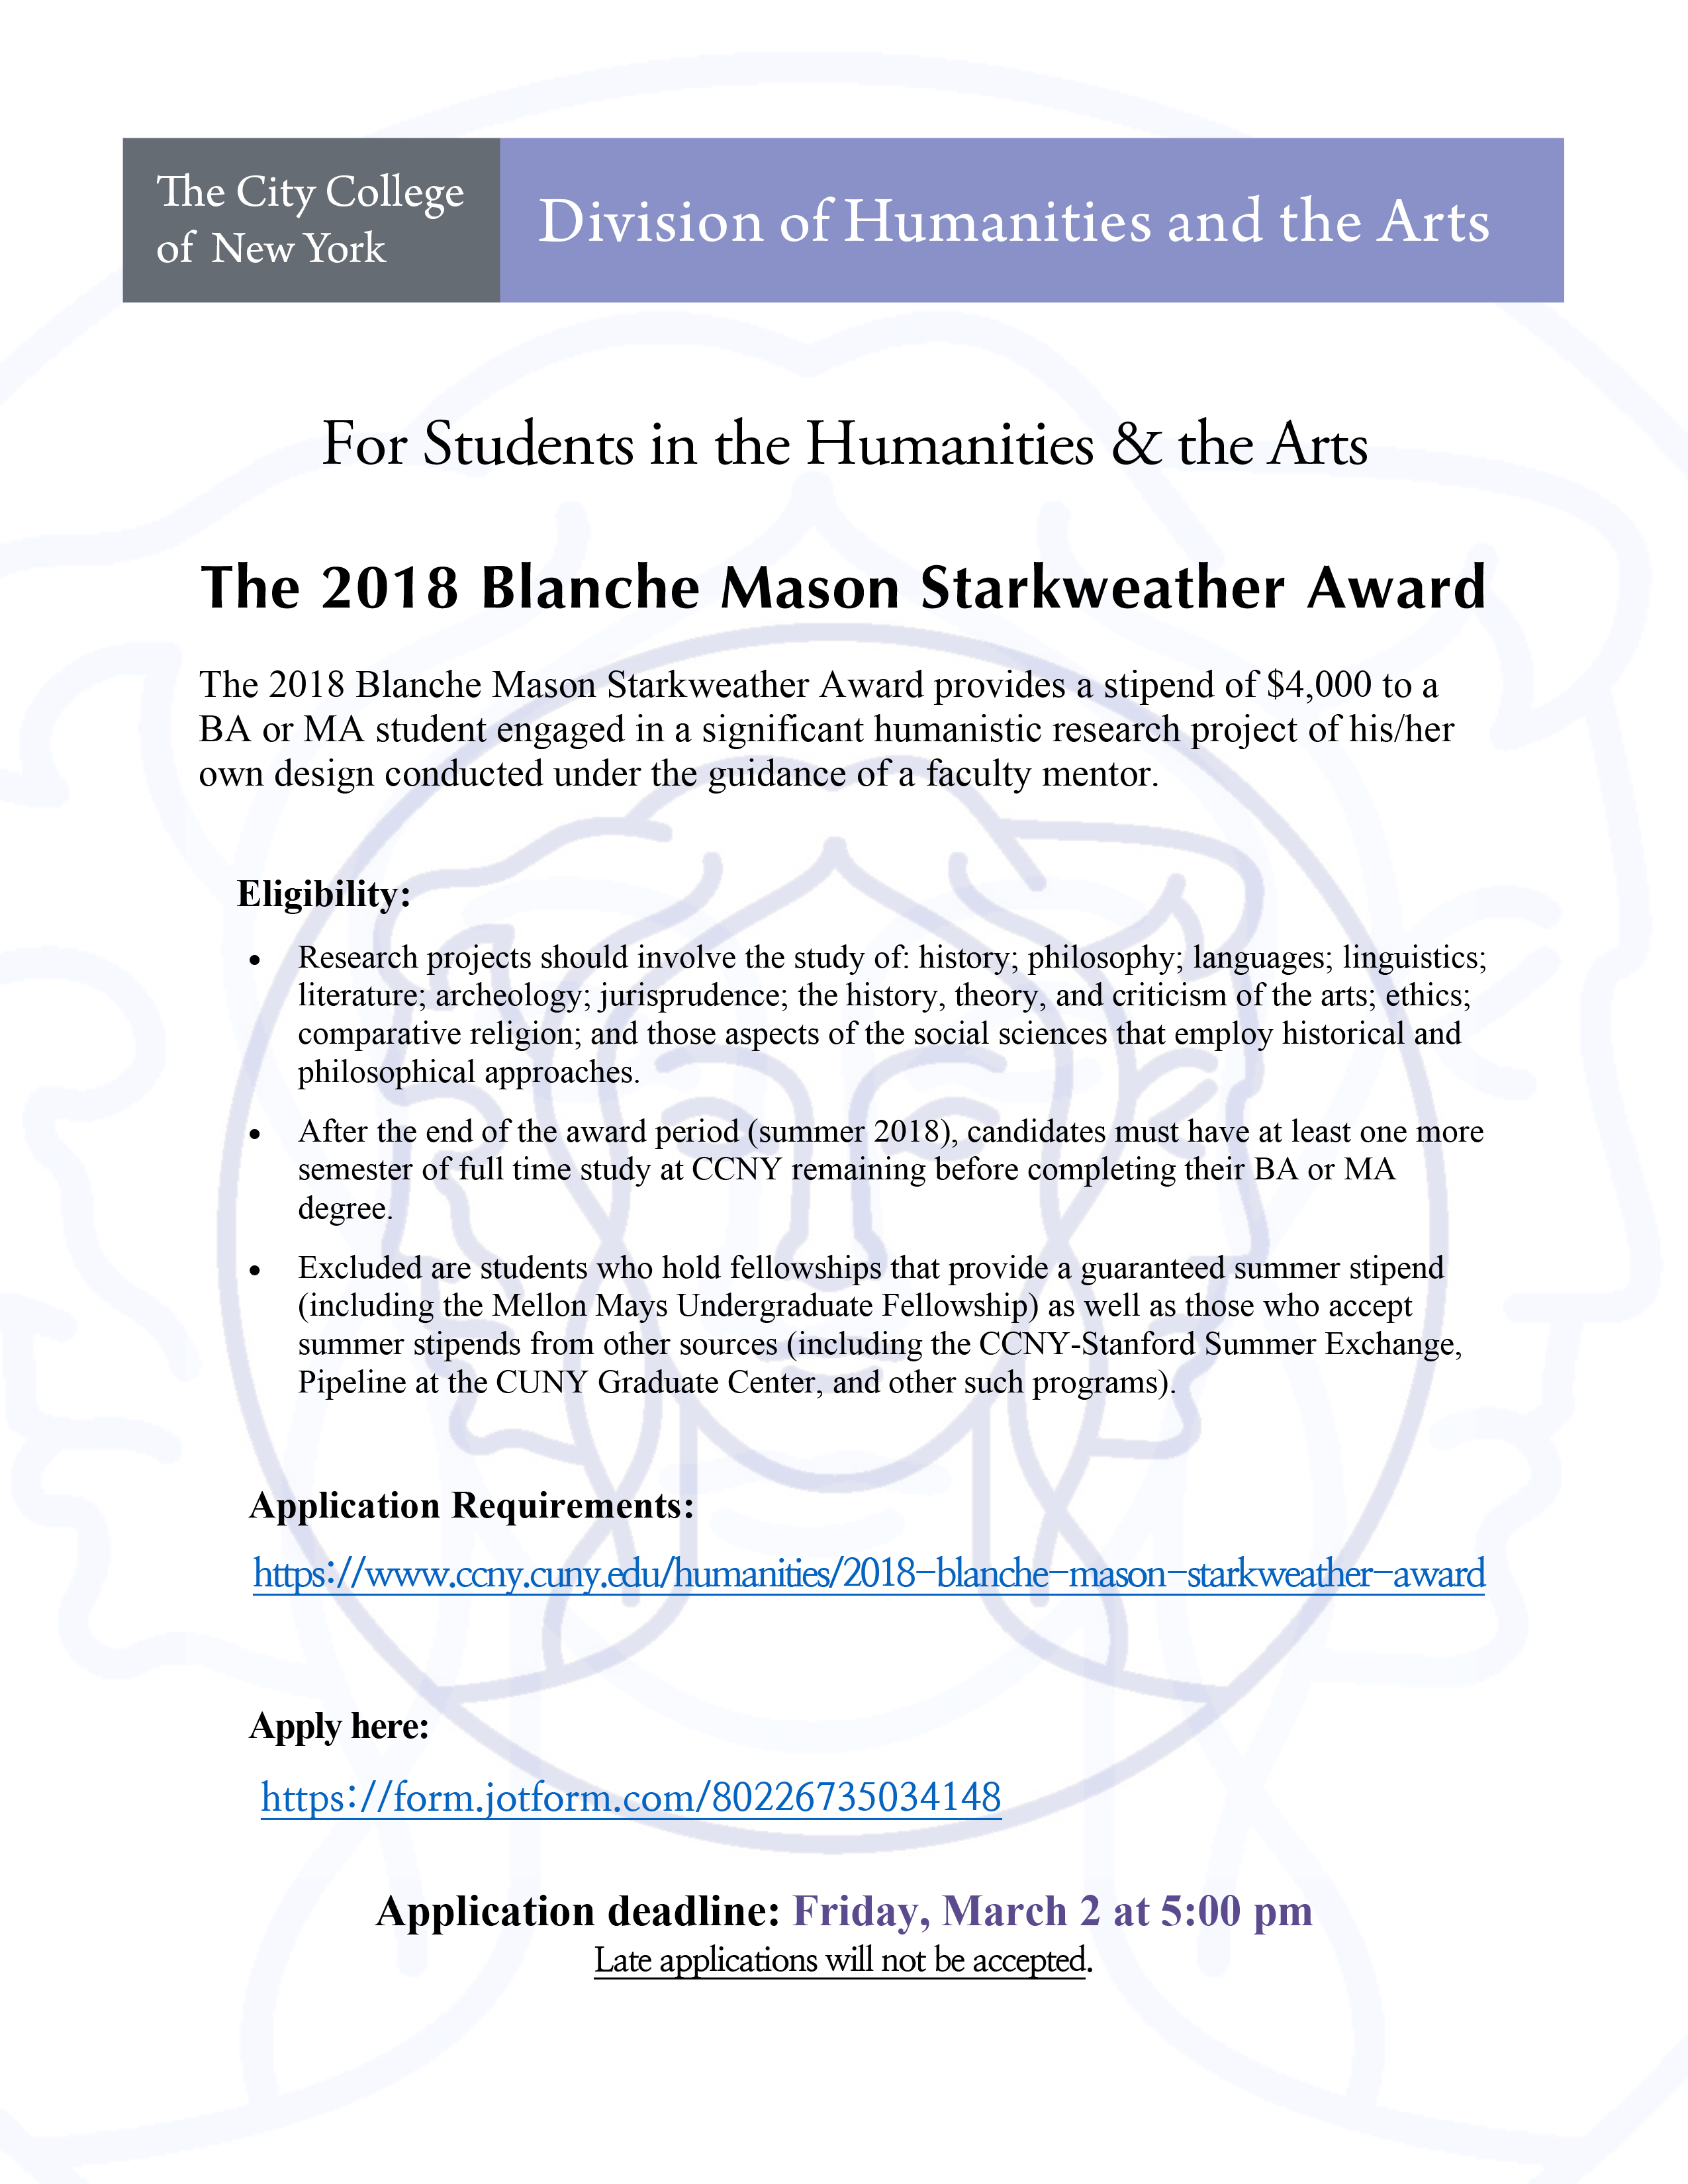 2018 Blanche Mason Starkweather Award